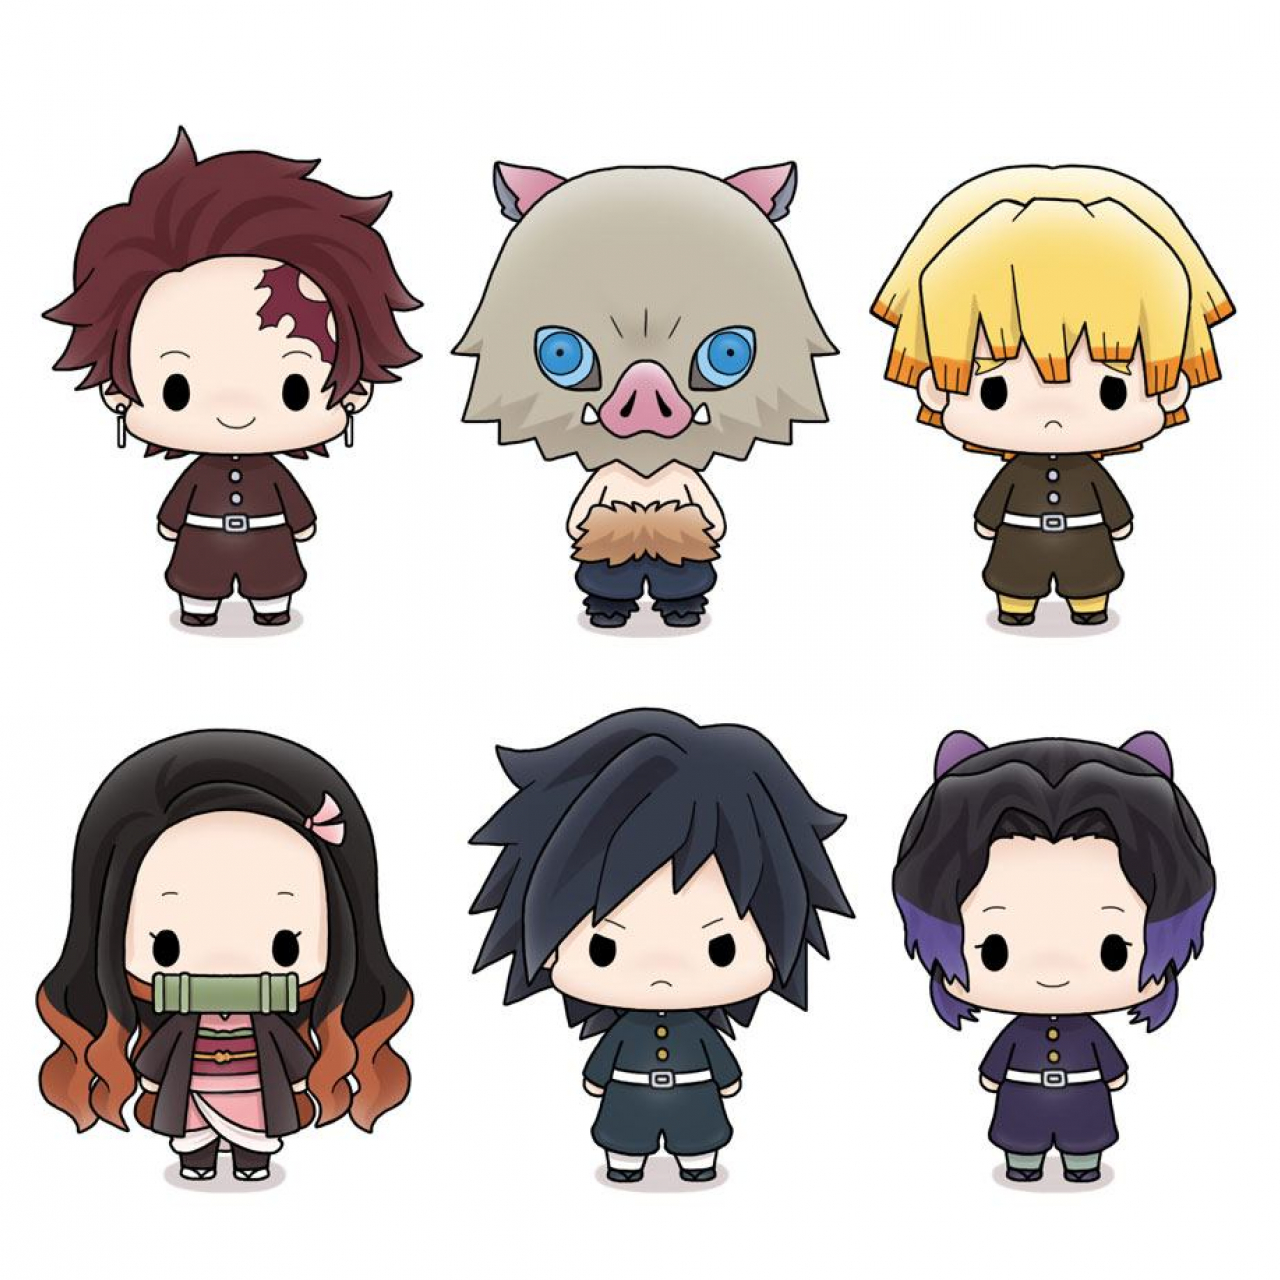 Demon Slayer: Kimetsu no Yaiba Chokorin Mascot Series Trading Figure 5 cm Assortment (6)